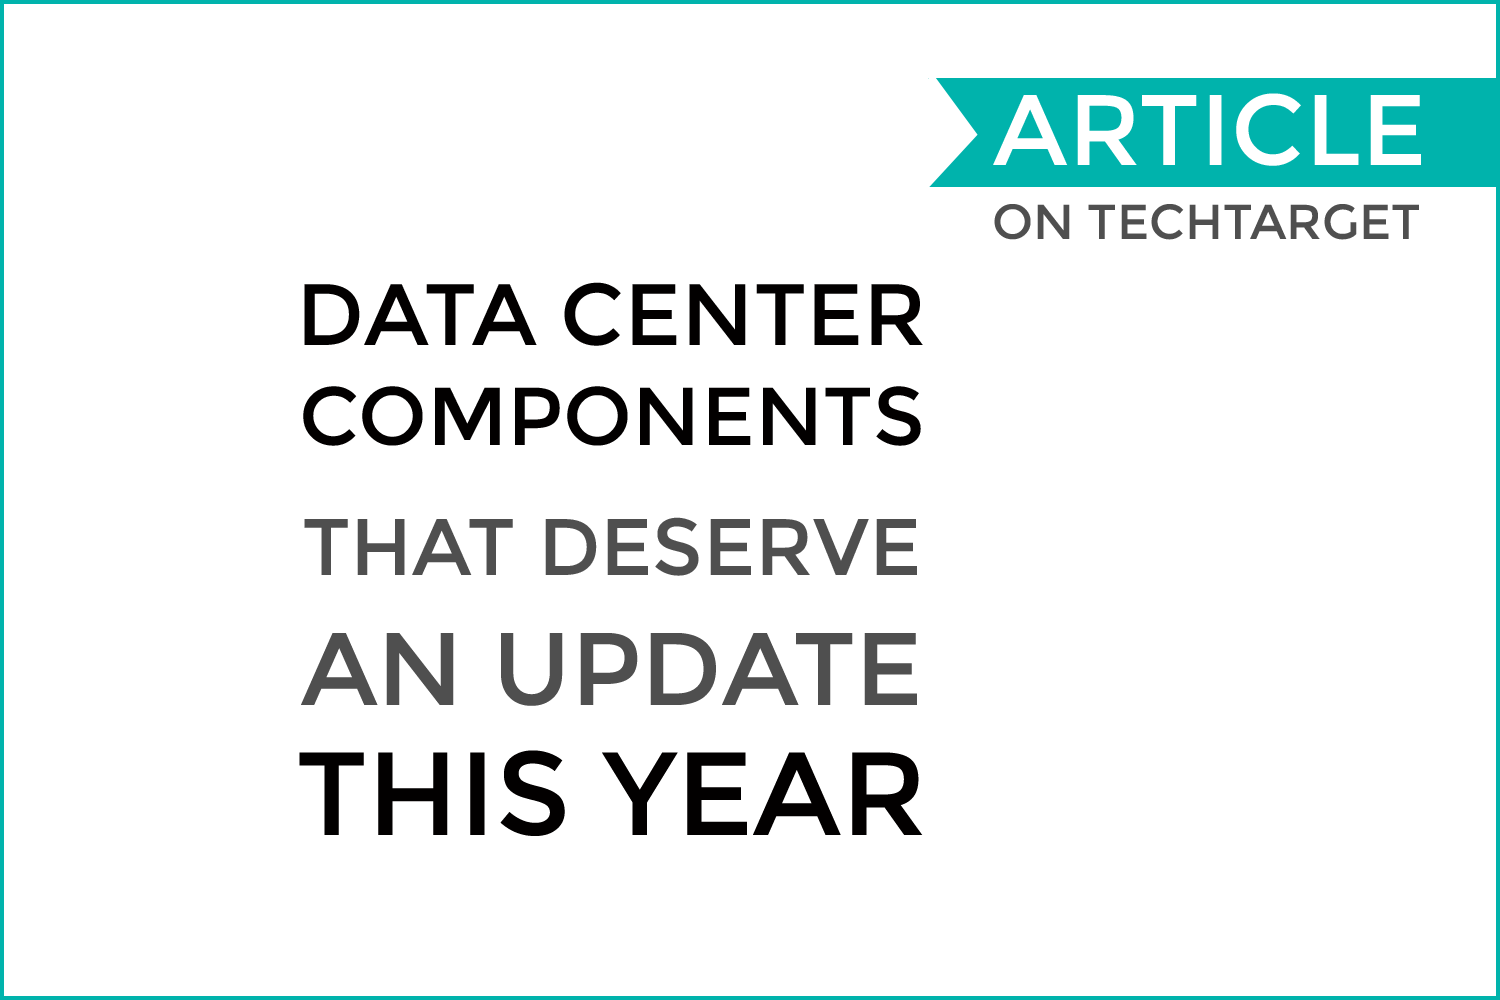 Data center components that deserve an update this year